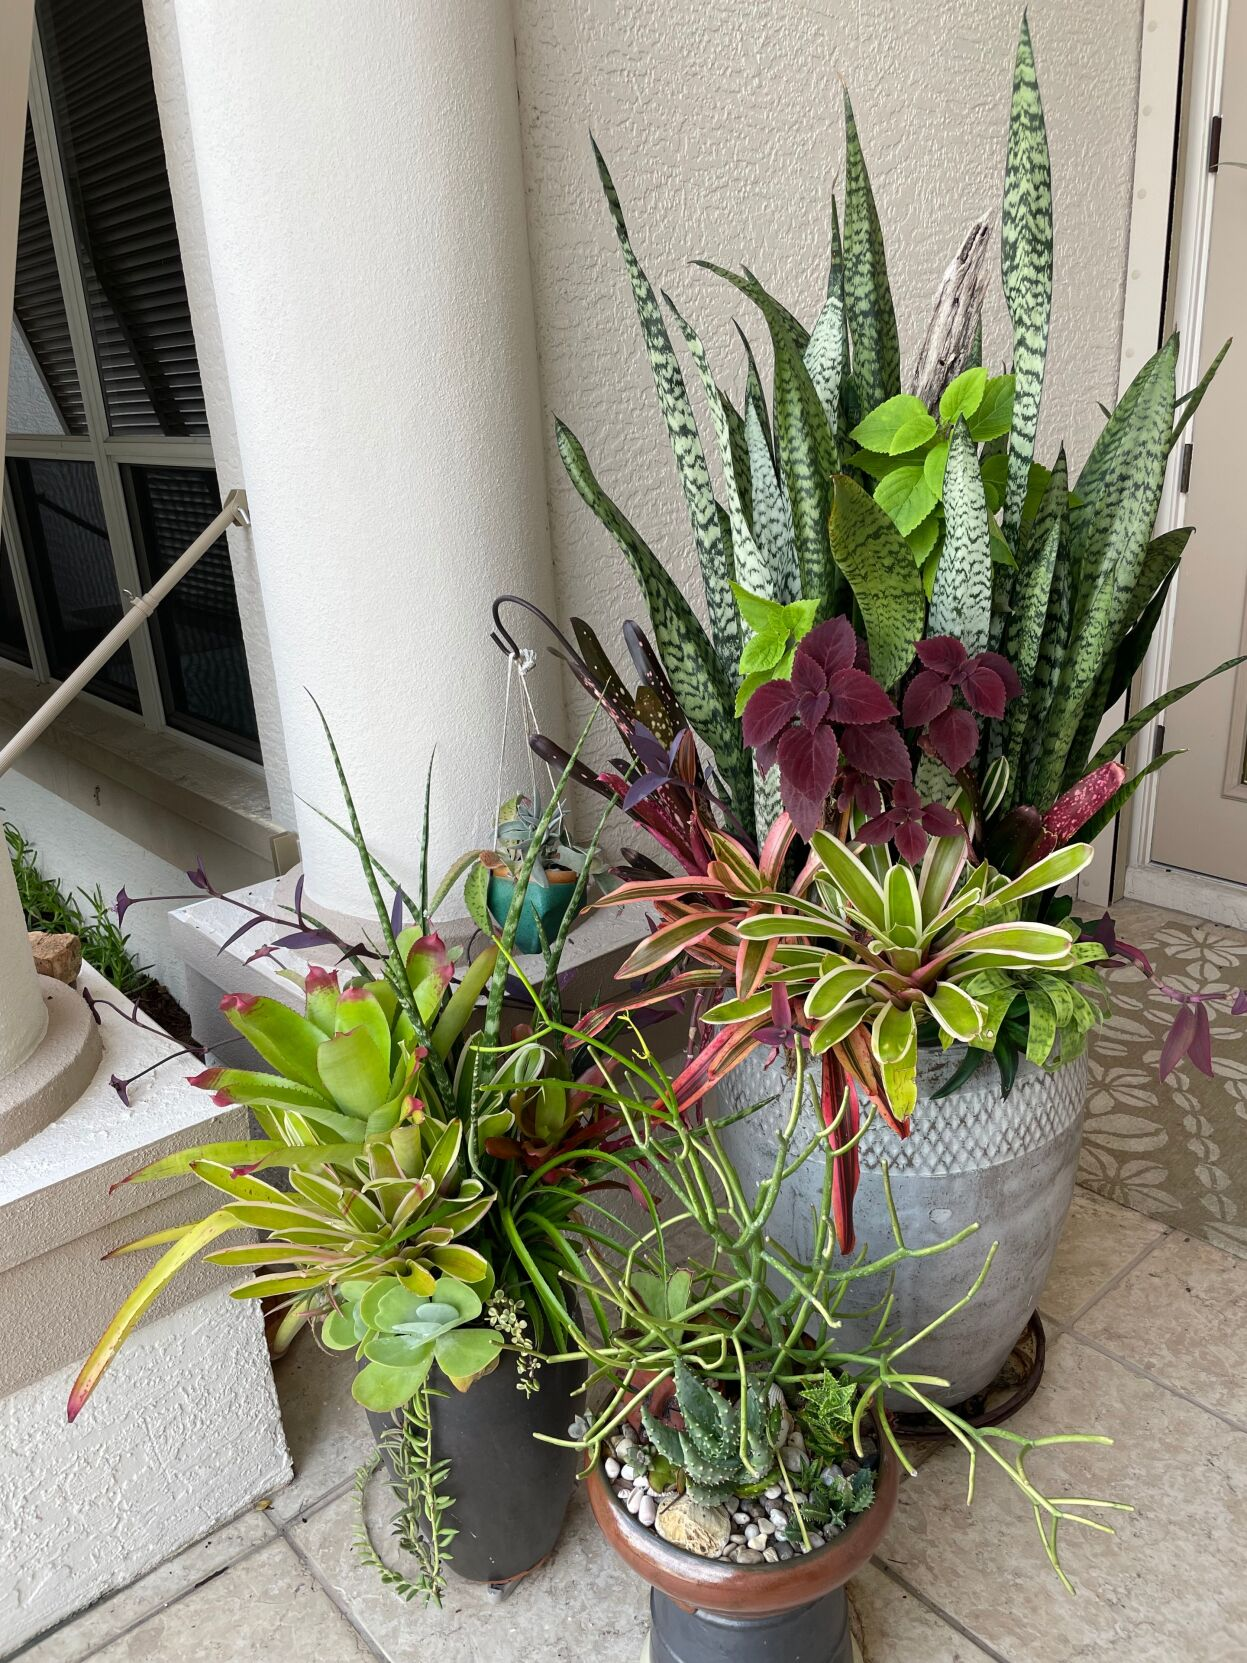 Grouping of succulents and bromeliads